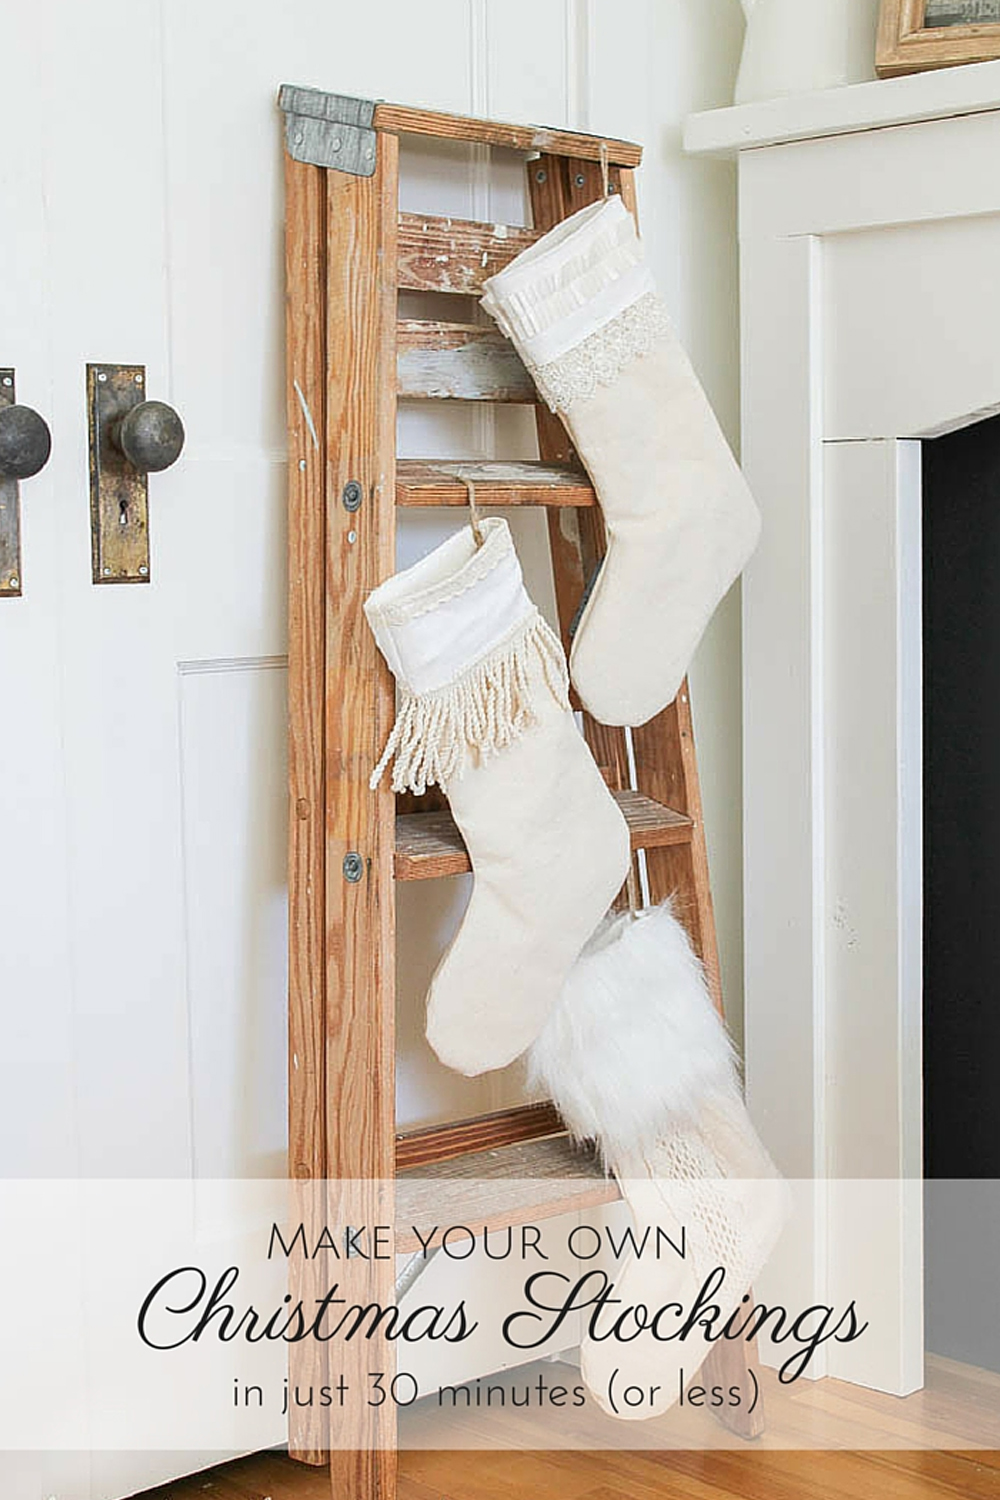 make your own Christmas stockings